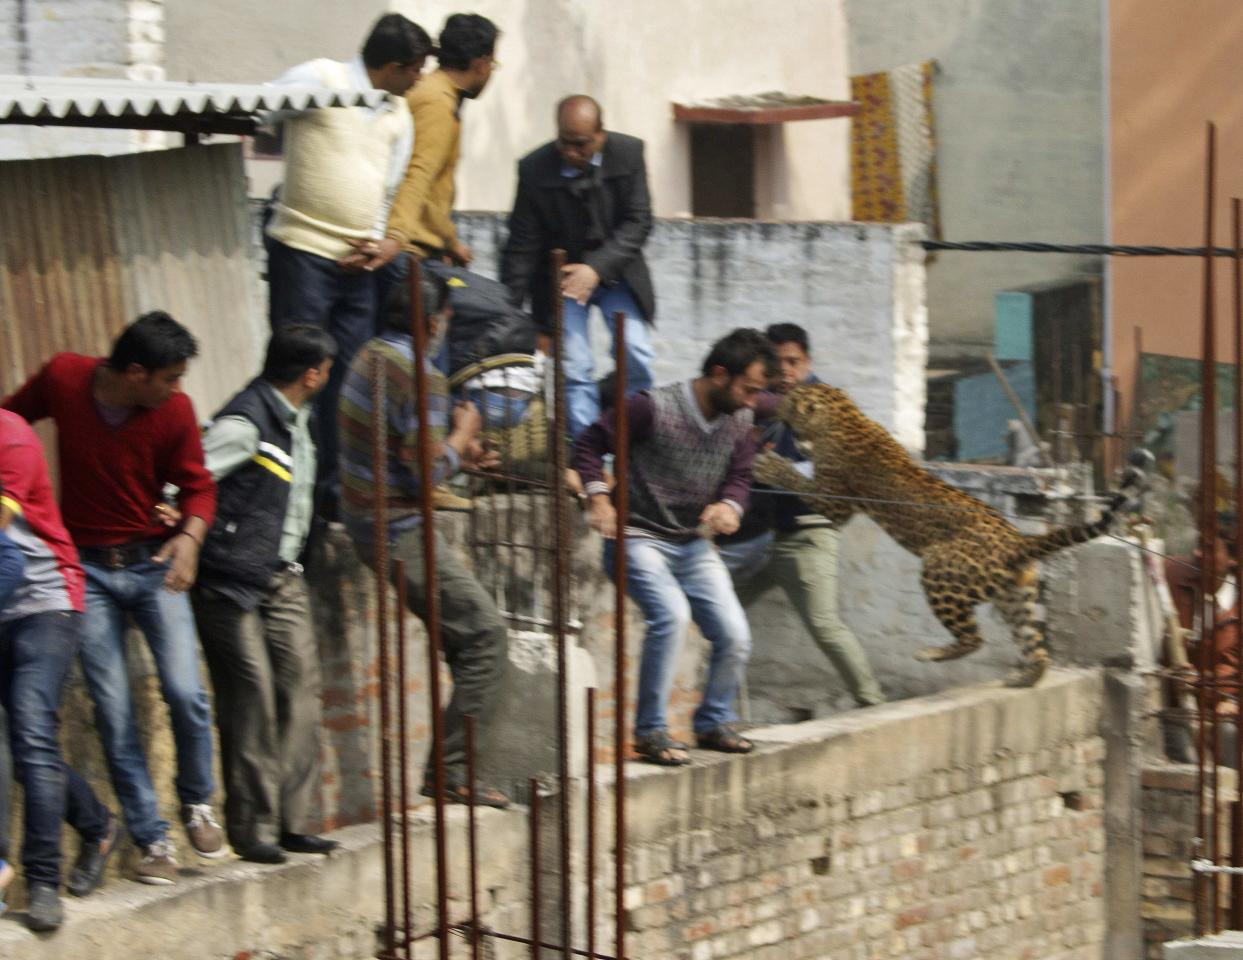 A leopard jumps at people at a structure undergoing construction at a residential area in Meerut